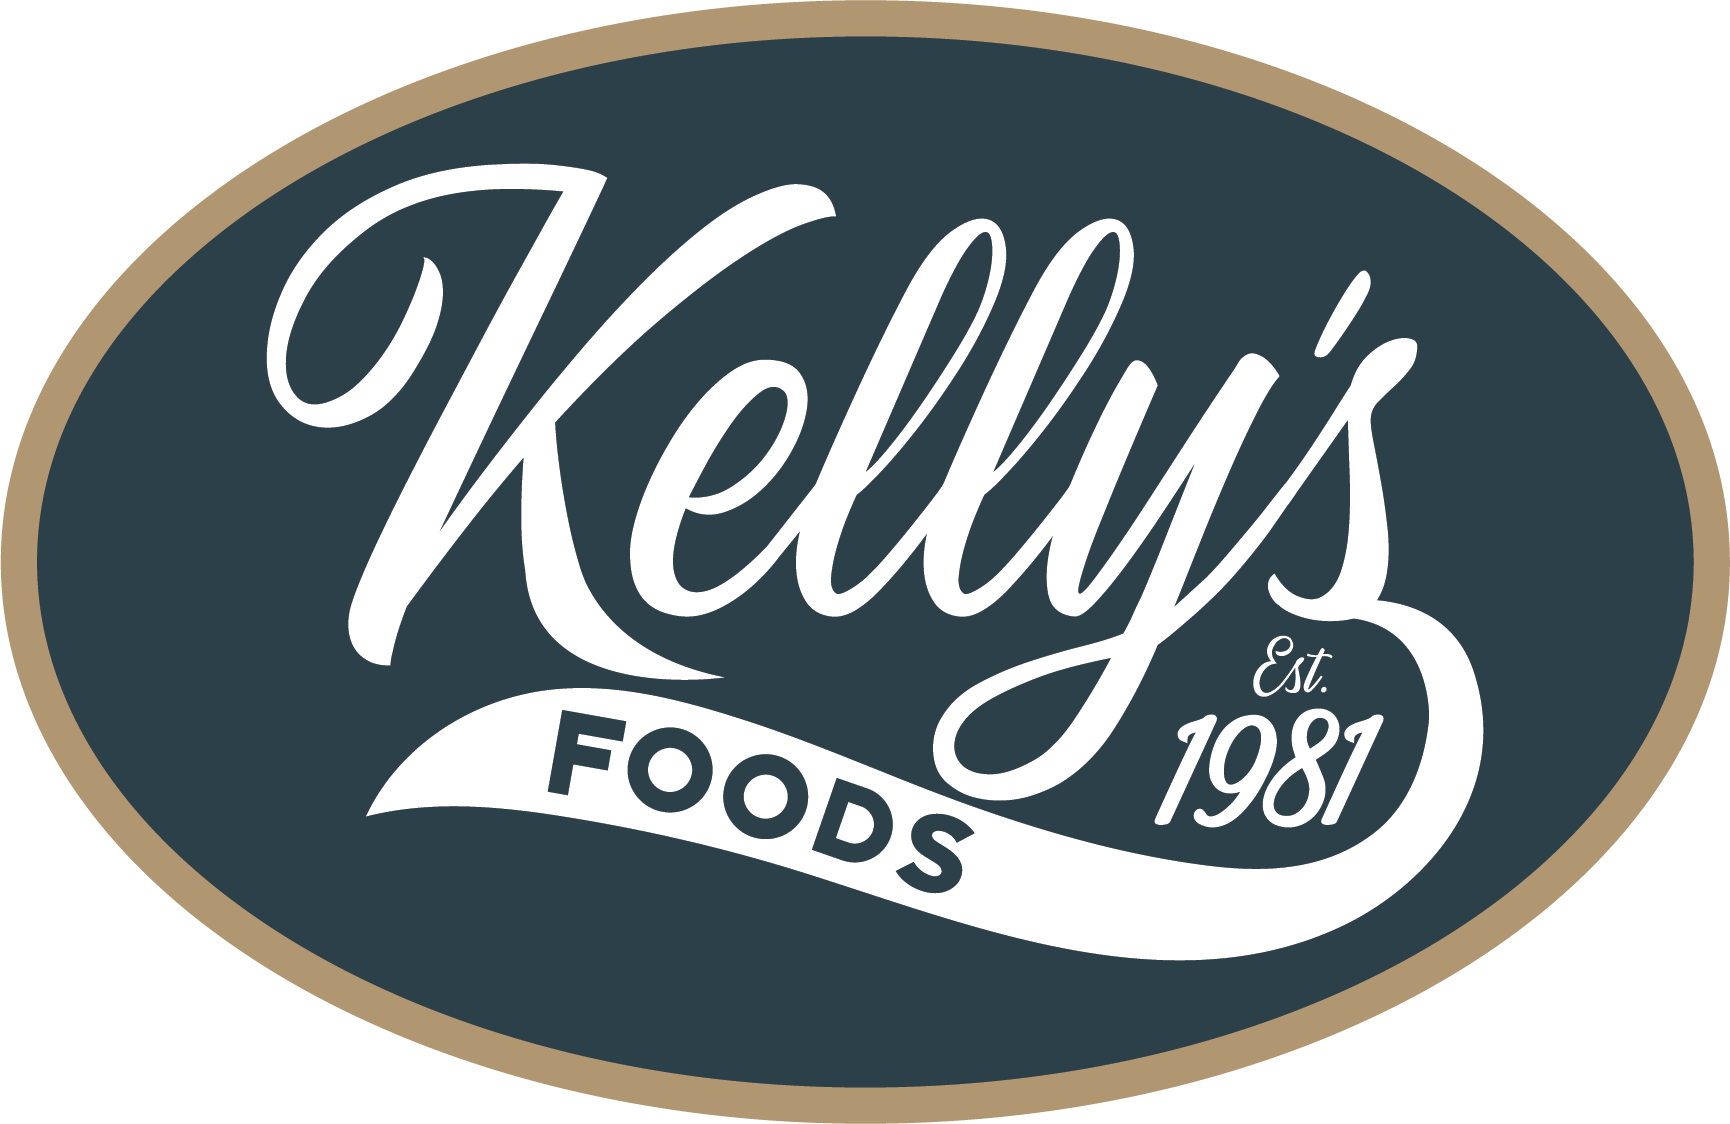 Kelly's Foods